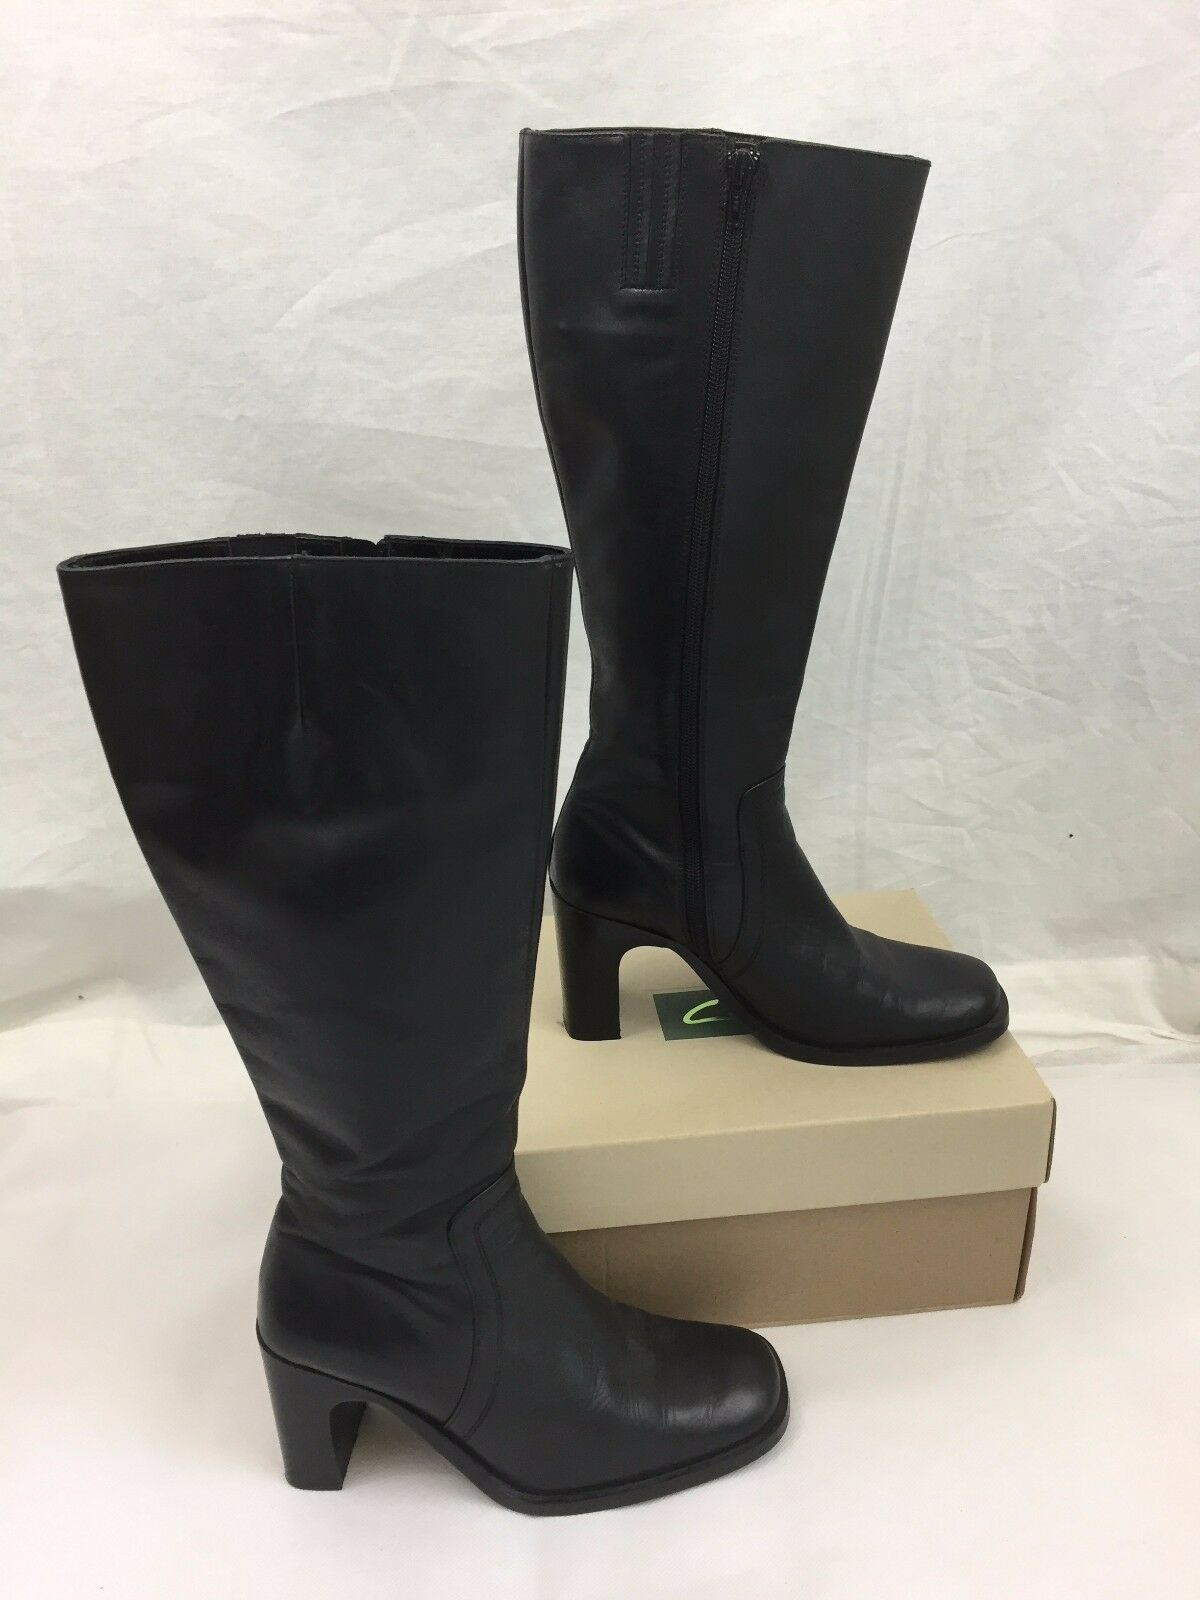 NEXT BLACK LEATHER CALF LENGTH Stiefel WITH SQUARE TOES & 37 HEELS SZ 4.5 EUR 37 & -VGC b2ca1a